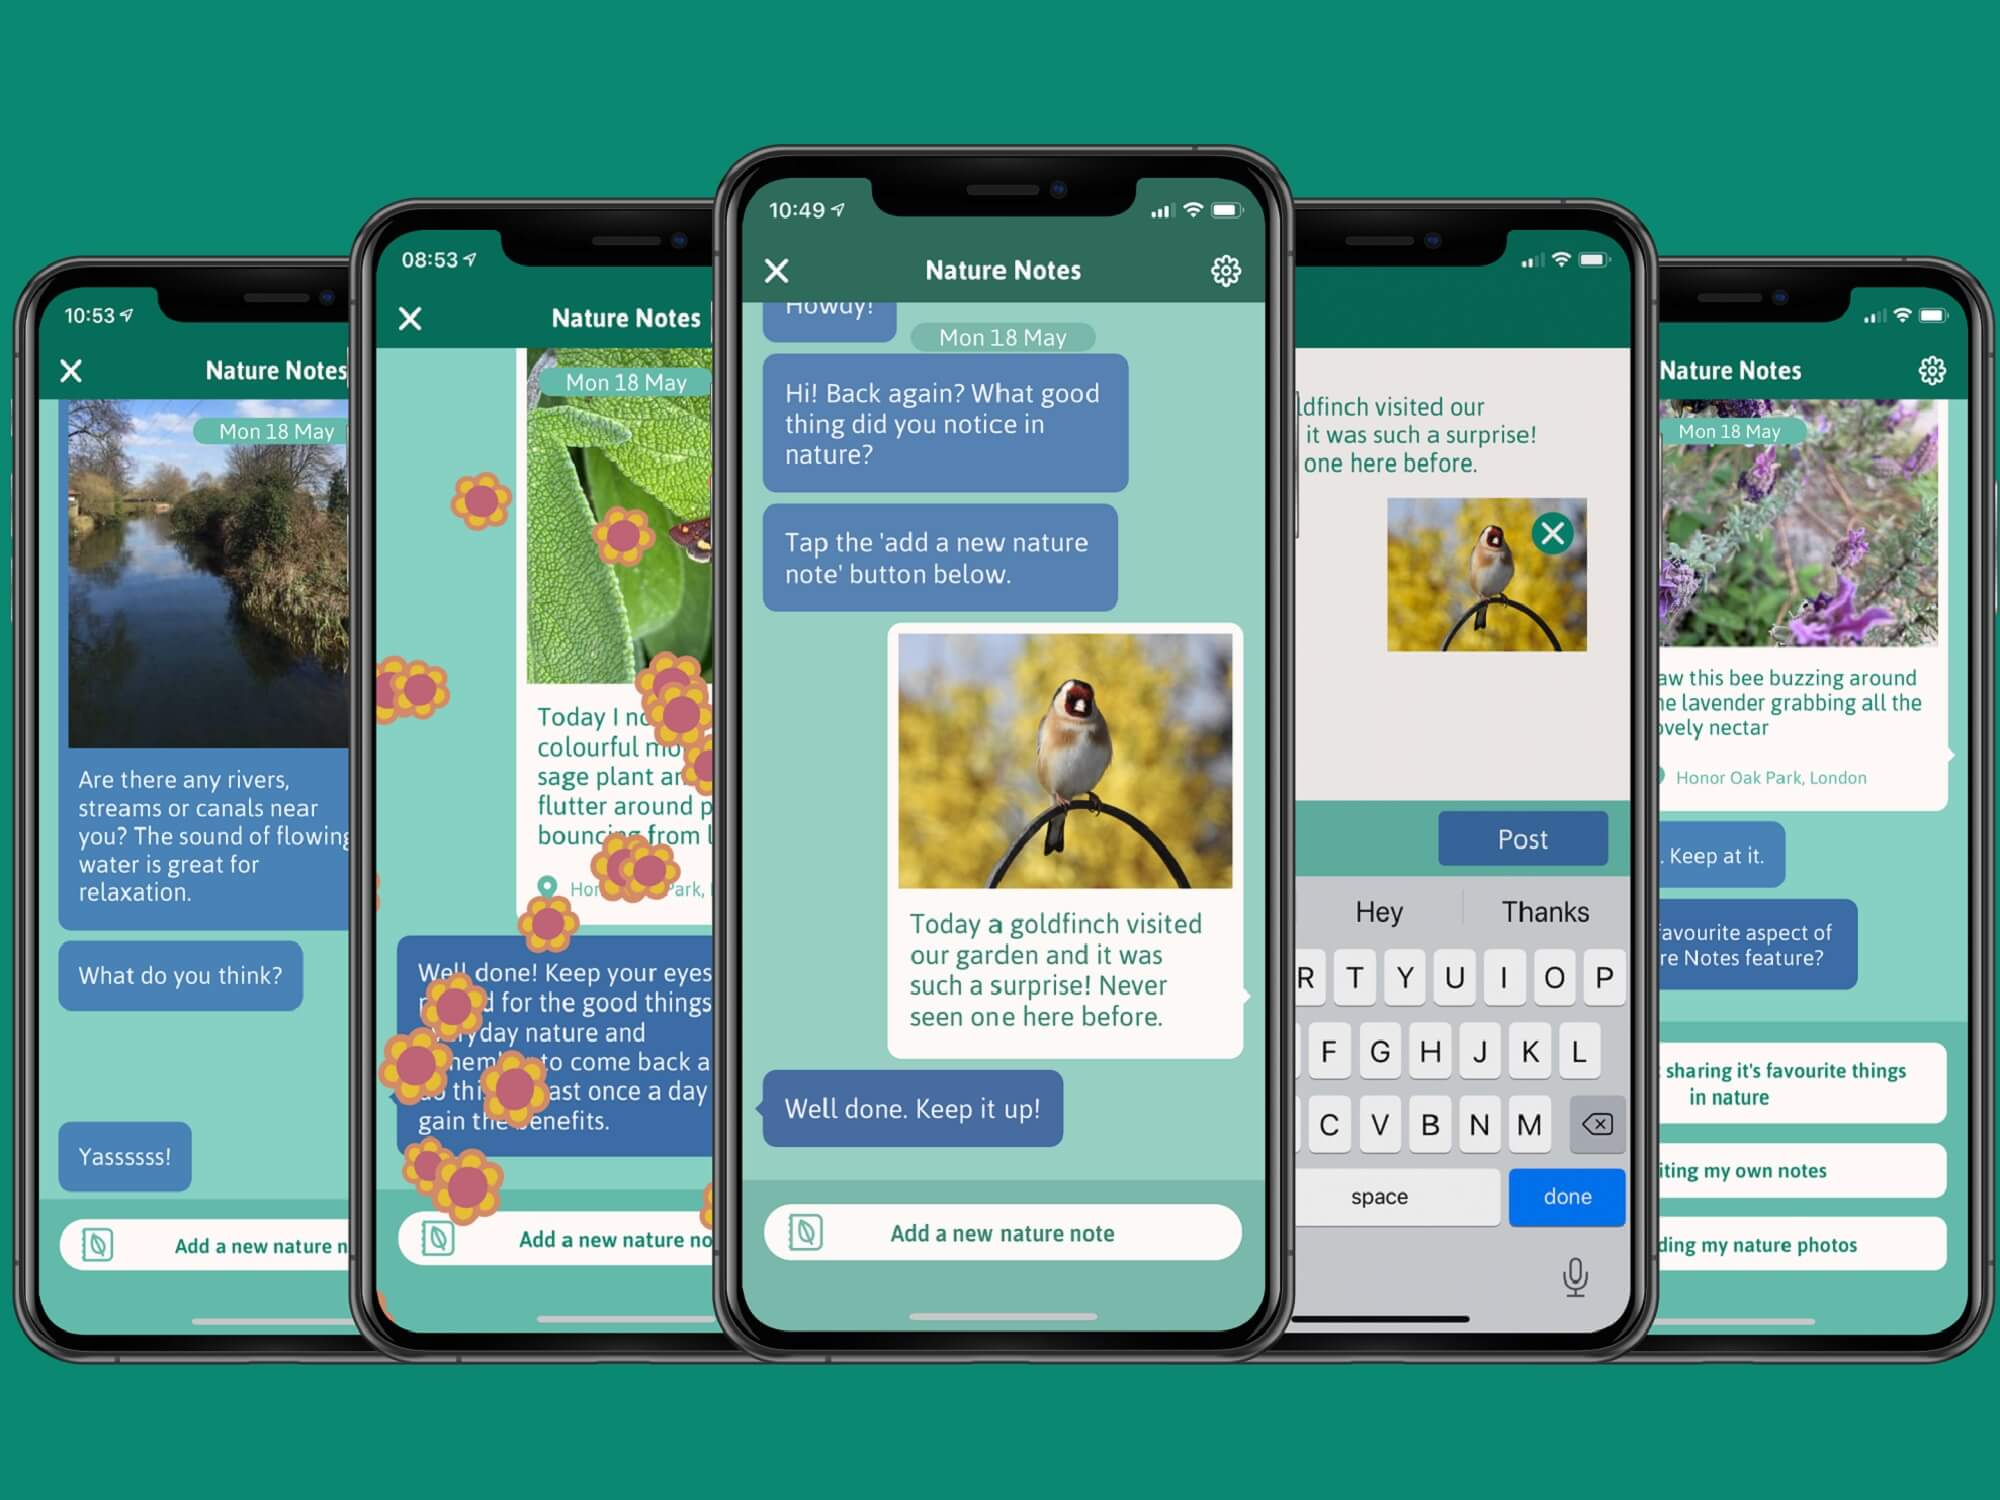 Mock-up of phone screens showing new Nature Notes app